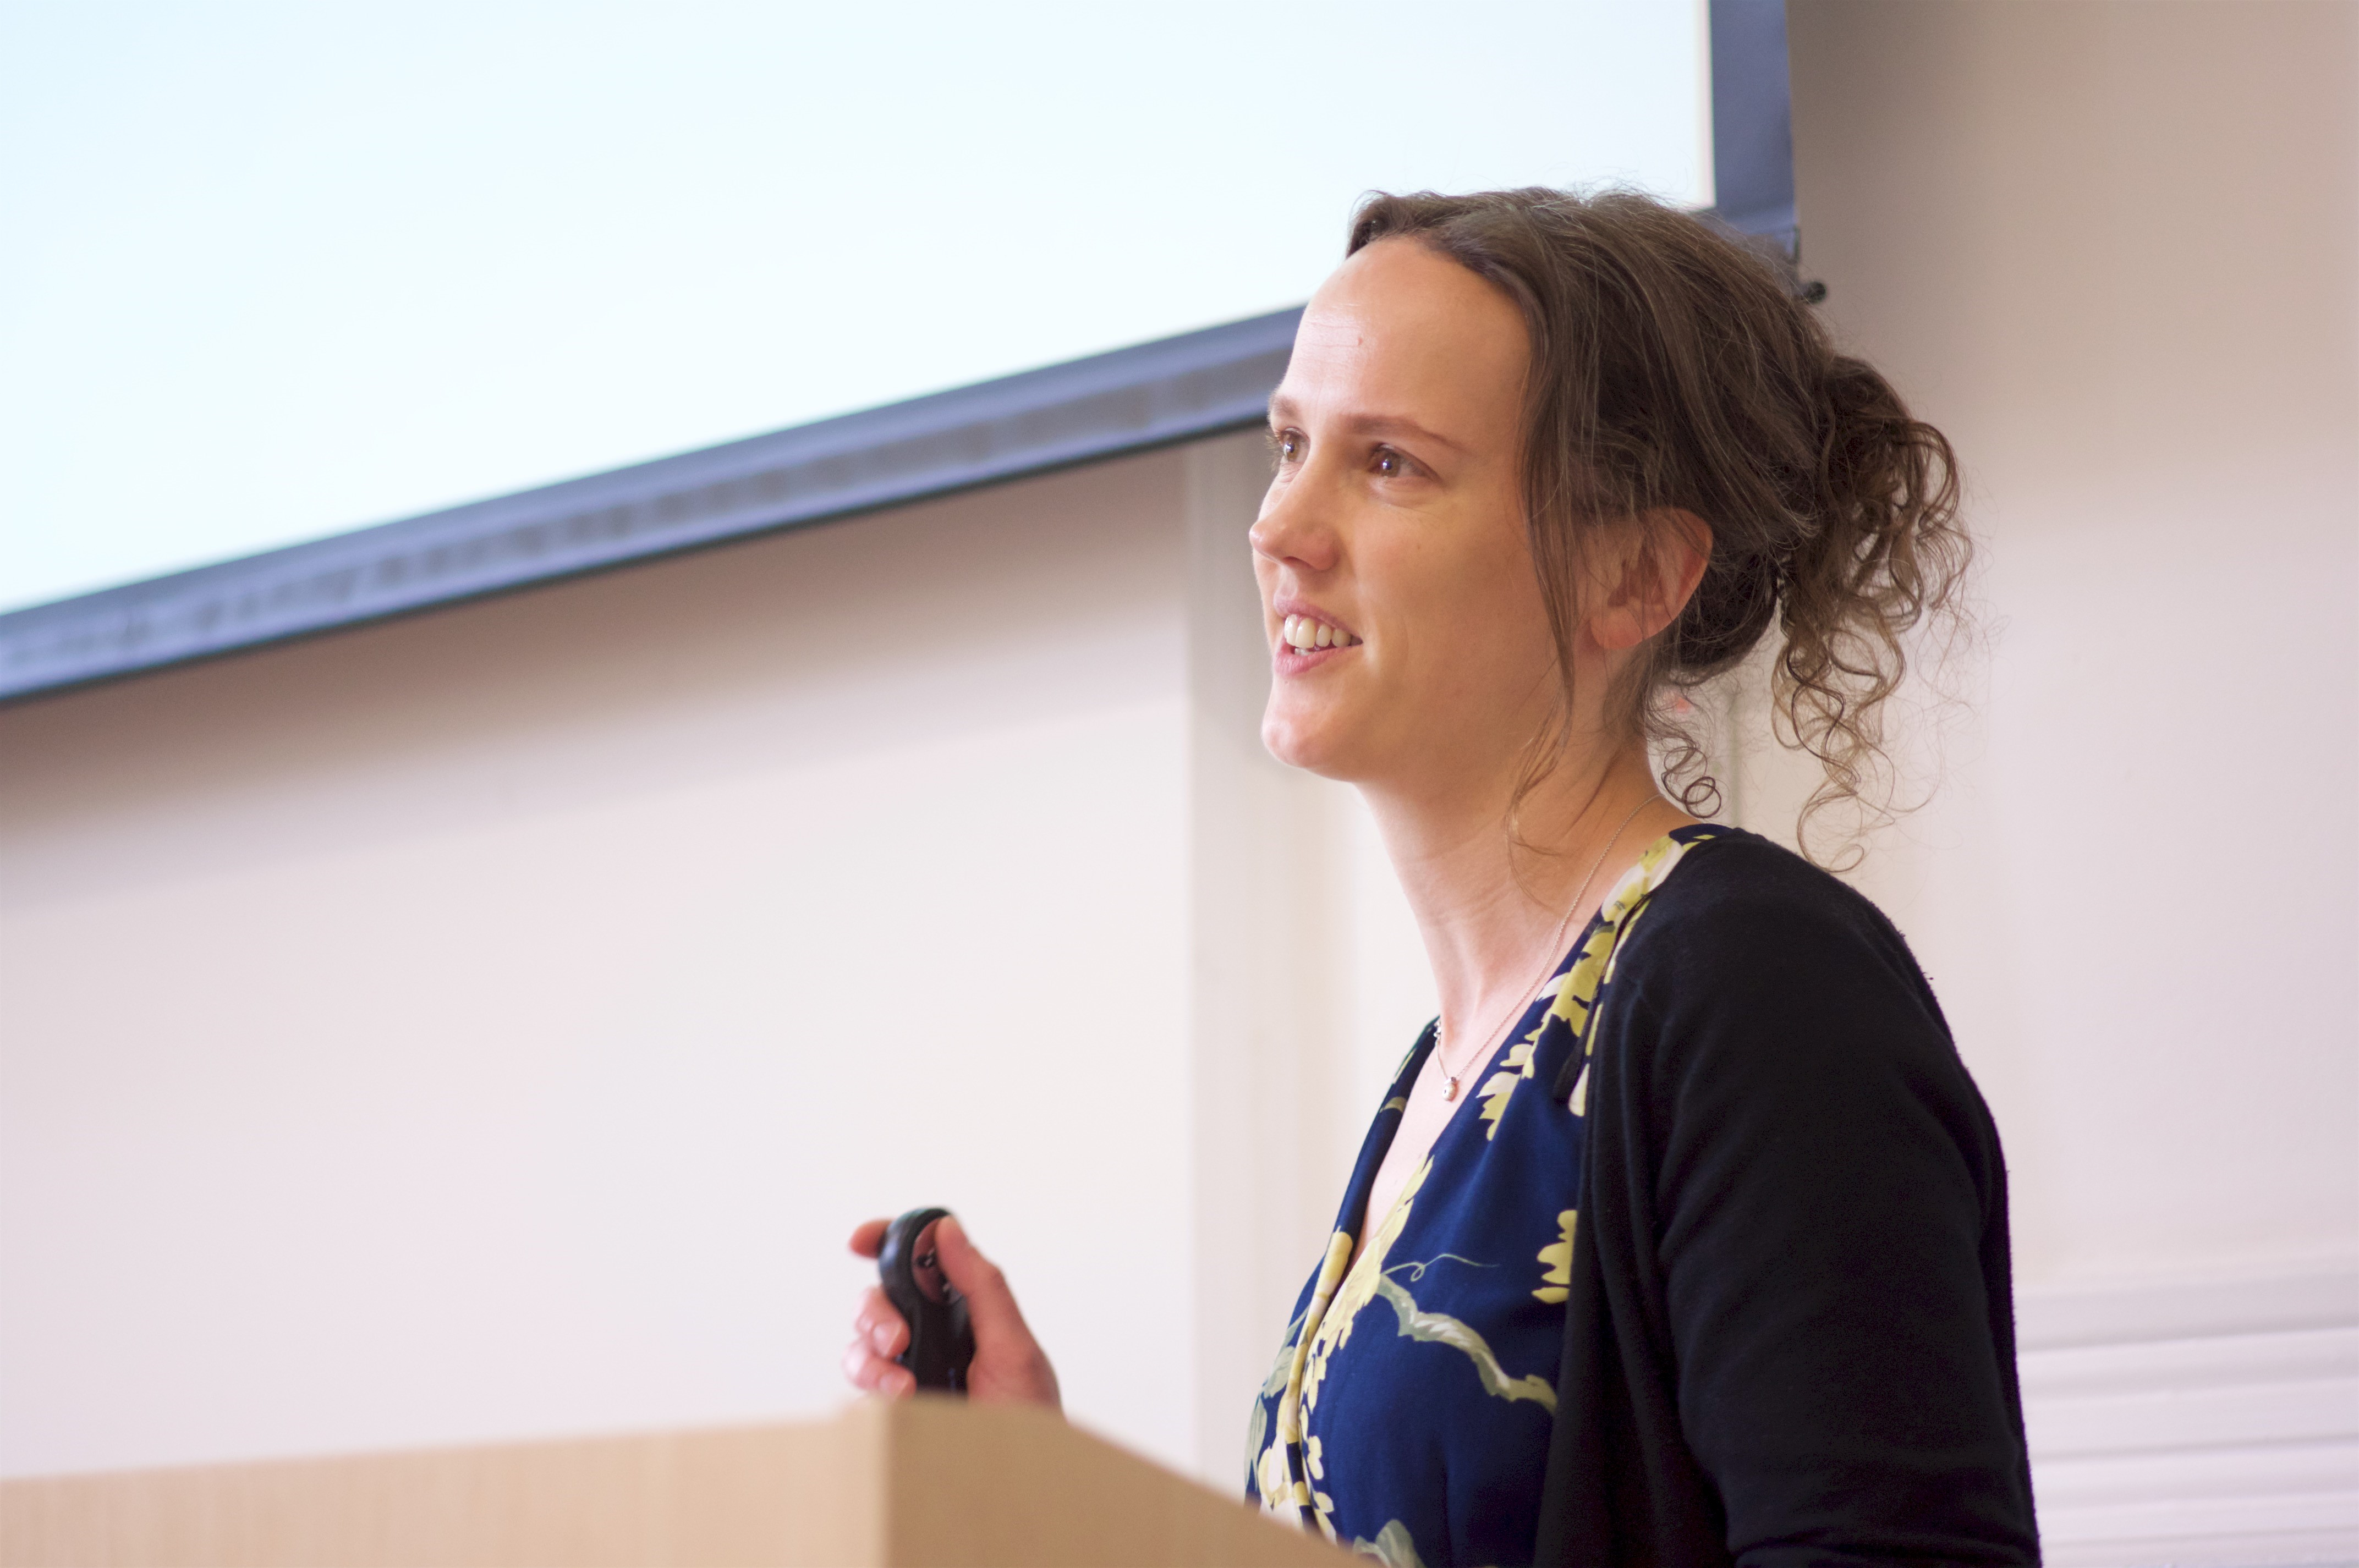 Katie presenting her talk at the LuCiD conference